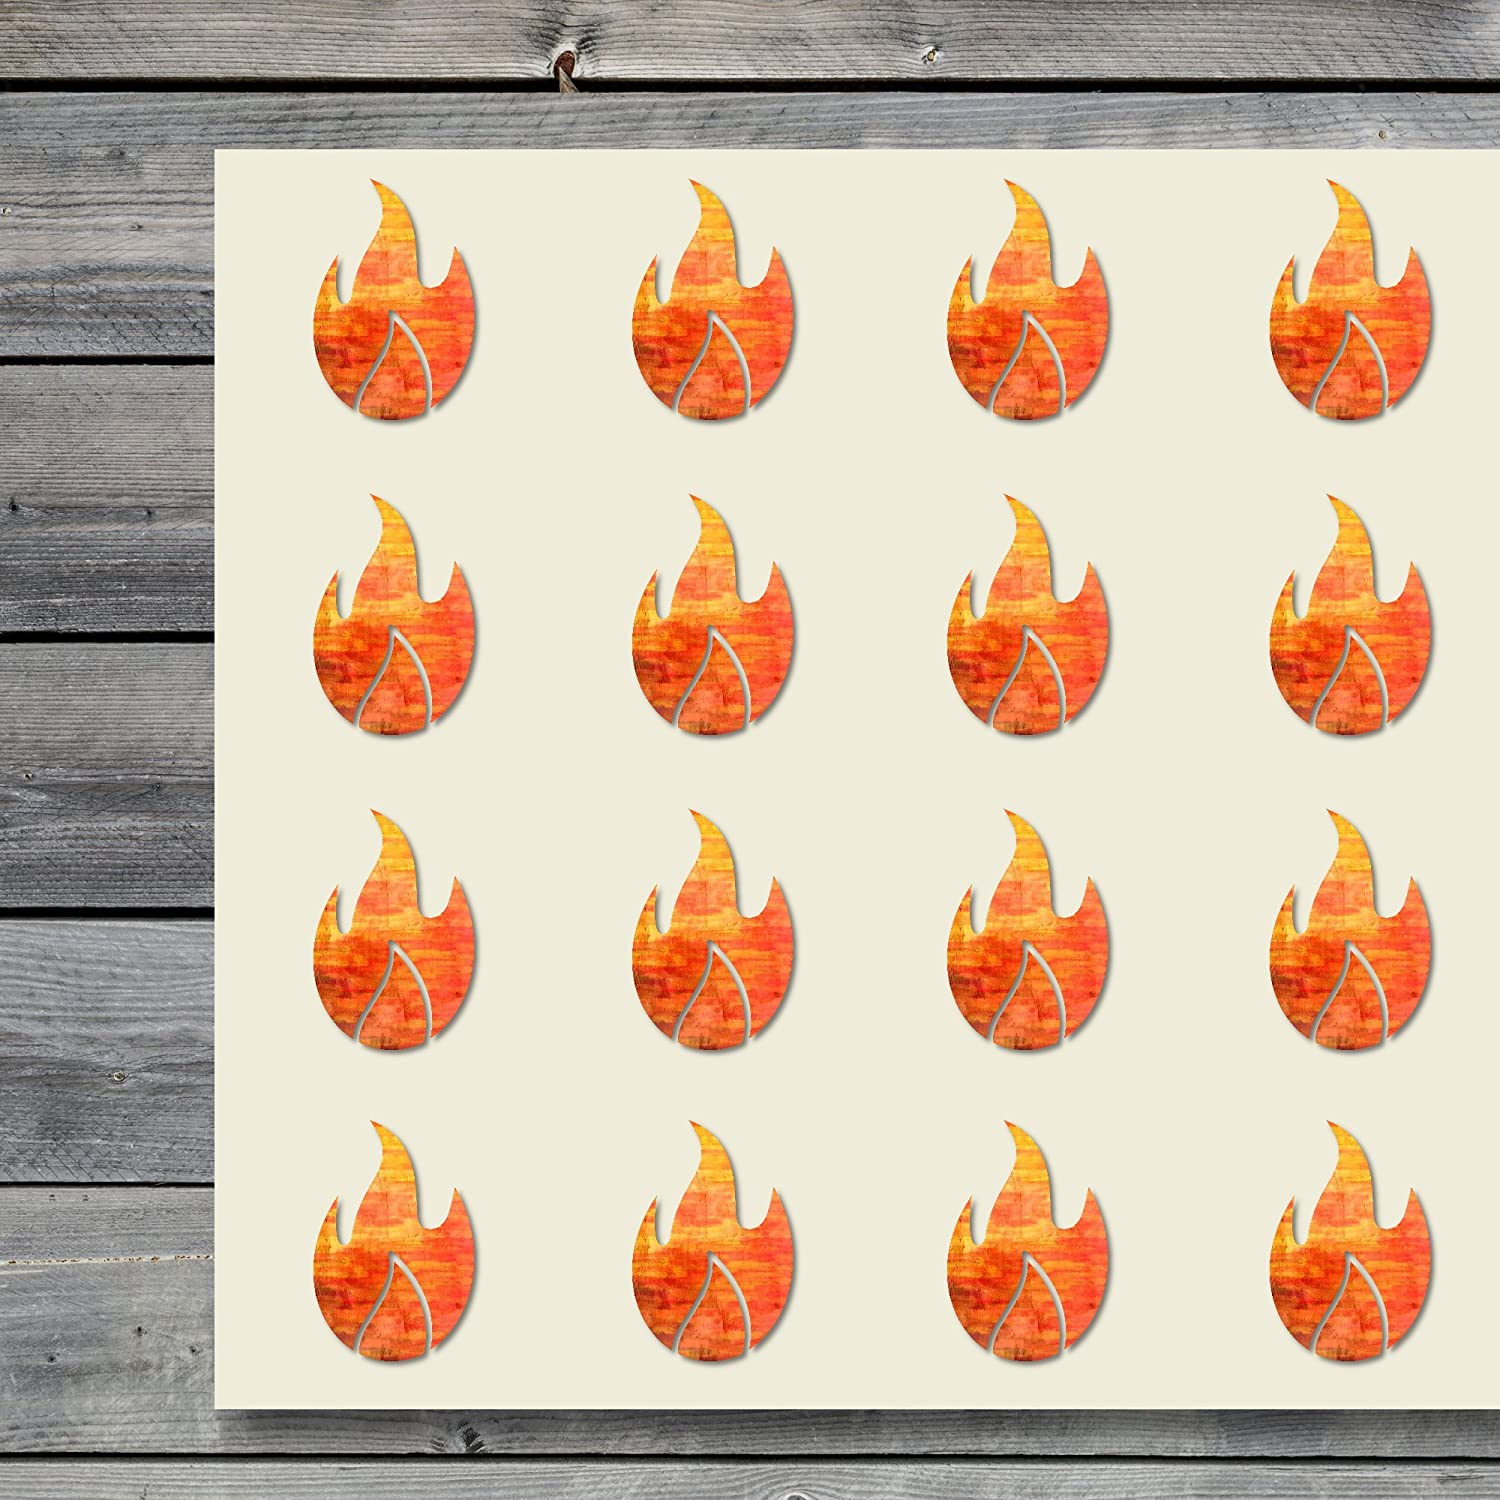 winkel officieel nieuw kopen Fire Blaze Flame Firing Burn Craft Stickers, 44 Stickers at 1.5 Inches,  Great Shapes for Scrapbook, Party, Seals, DIY Projects, Item 46230